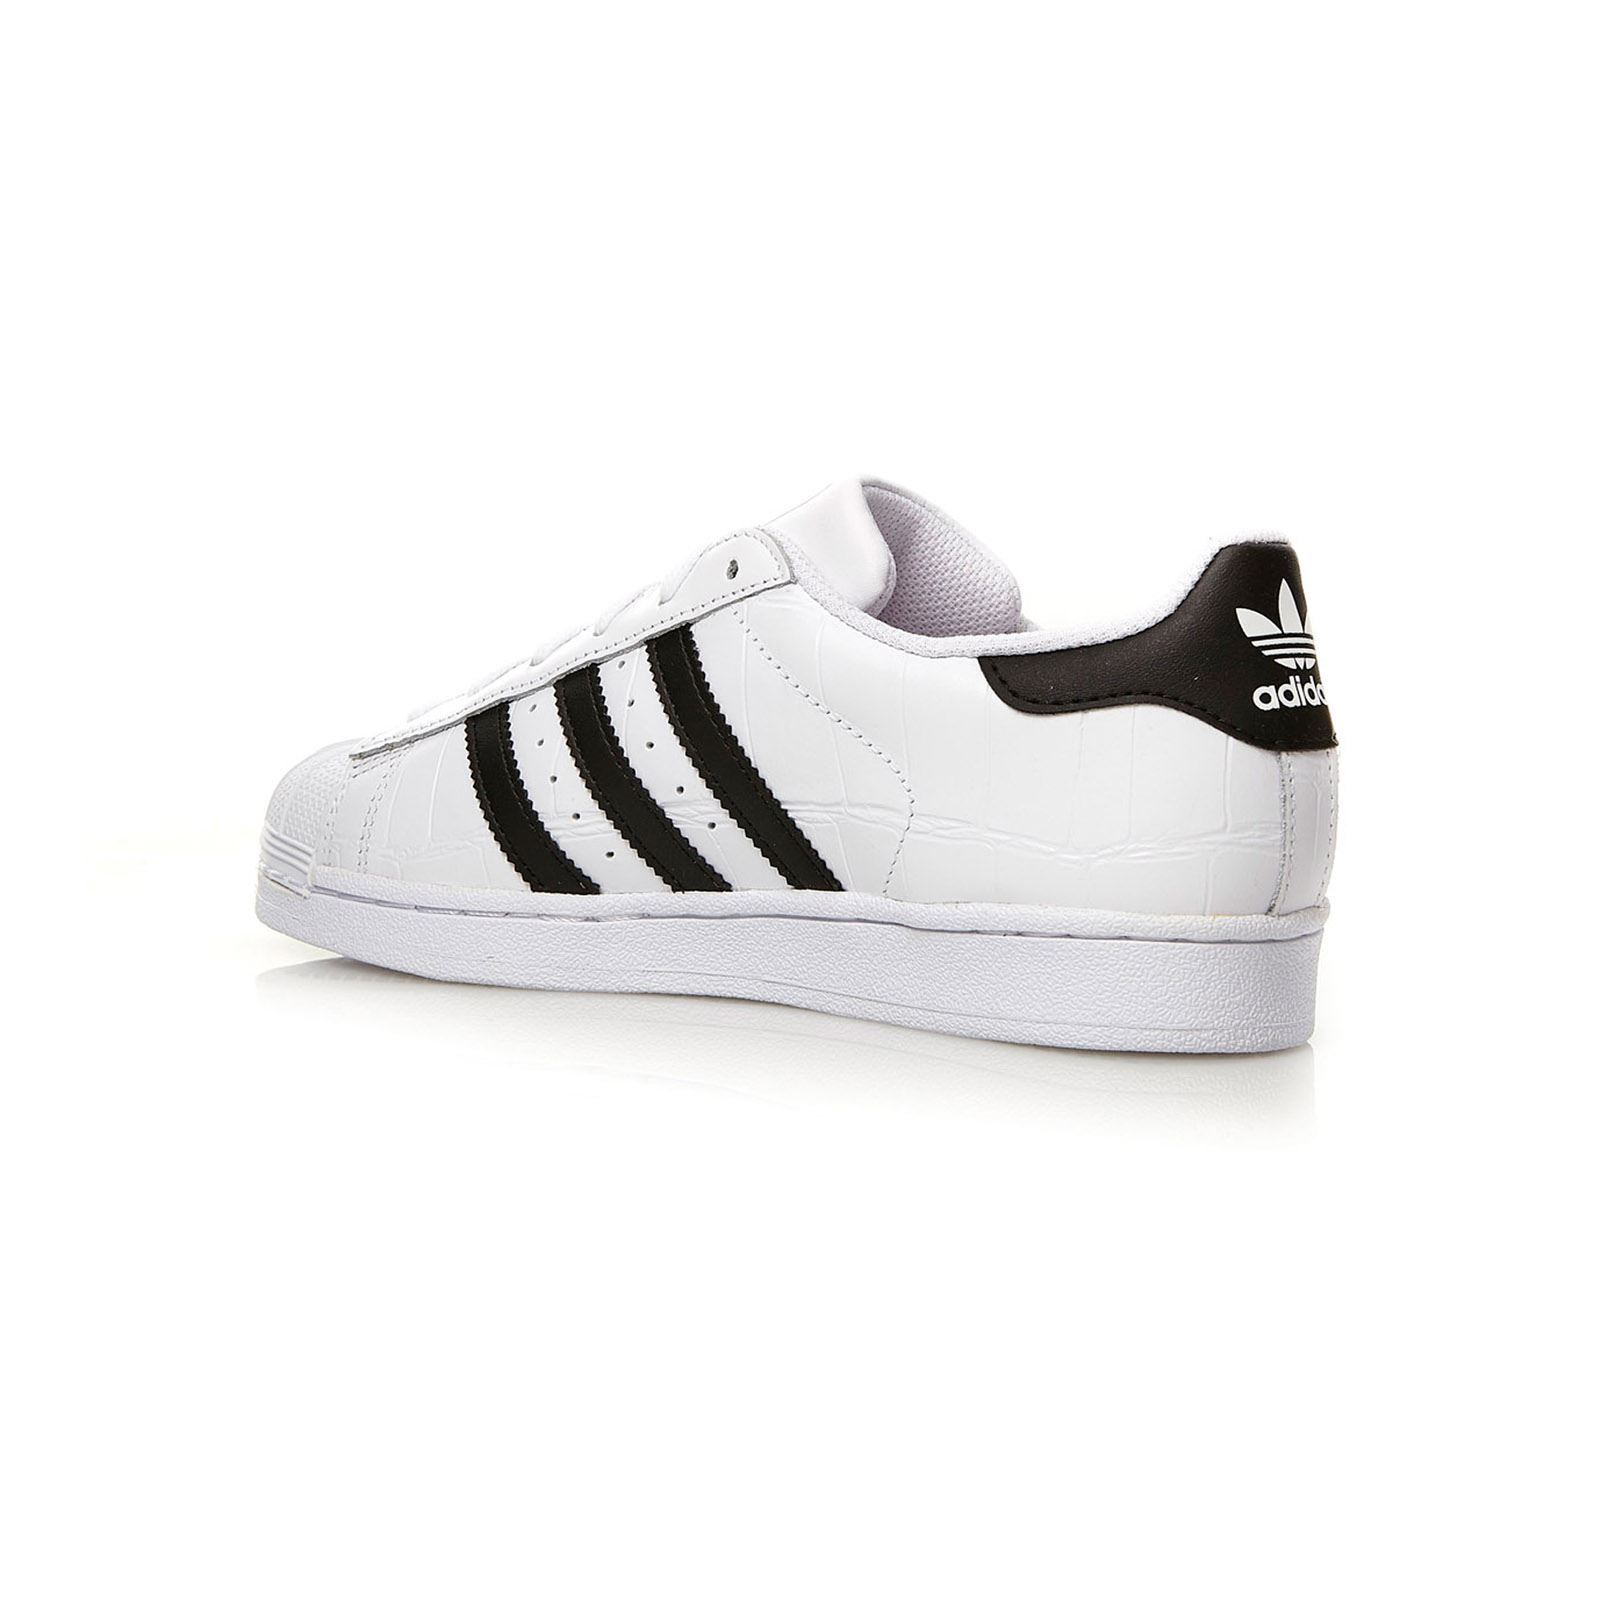 Adidas Originals Superstar - Baskets cuir bi-matière - bicolore Baskets  GH8HUA1Z - destrainspourtous.fr 92ecde3ca07